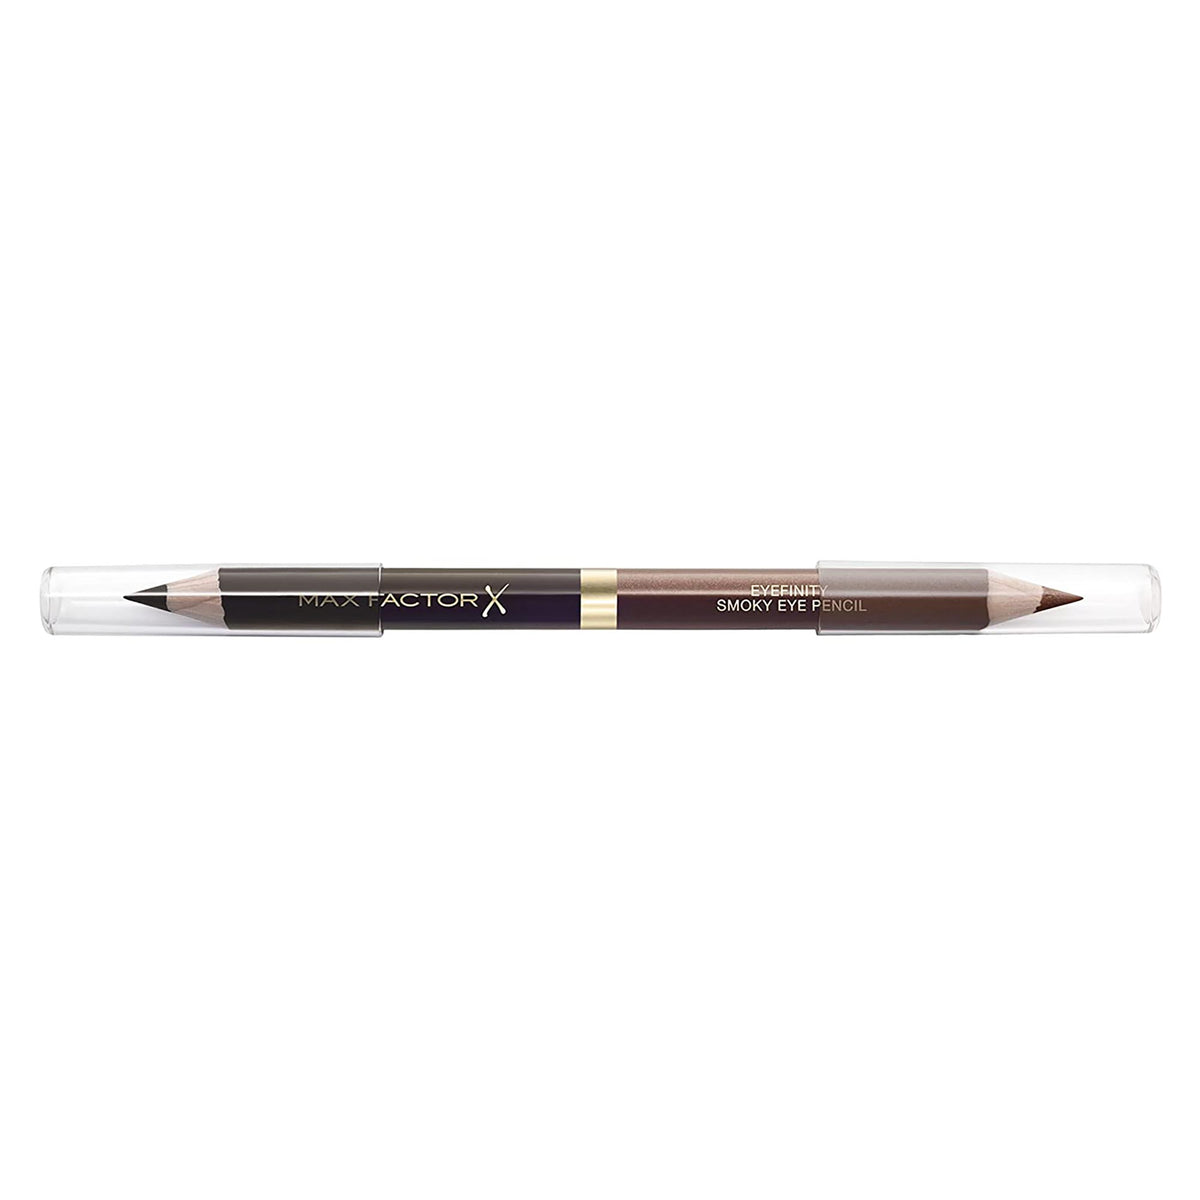 Max Factor Eyefinity Smoky Eye Pencil